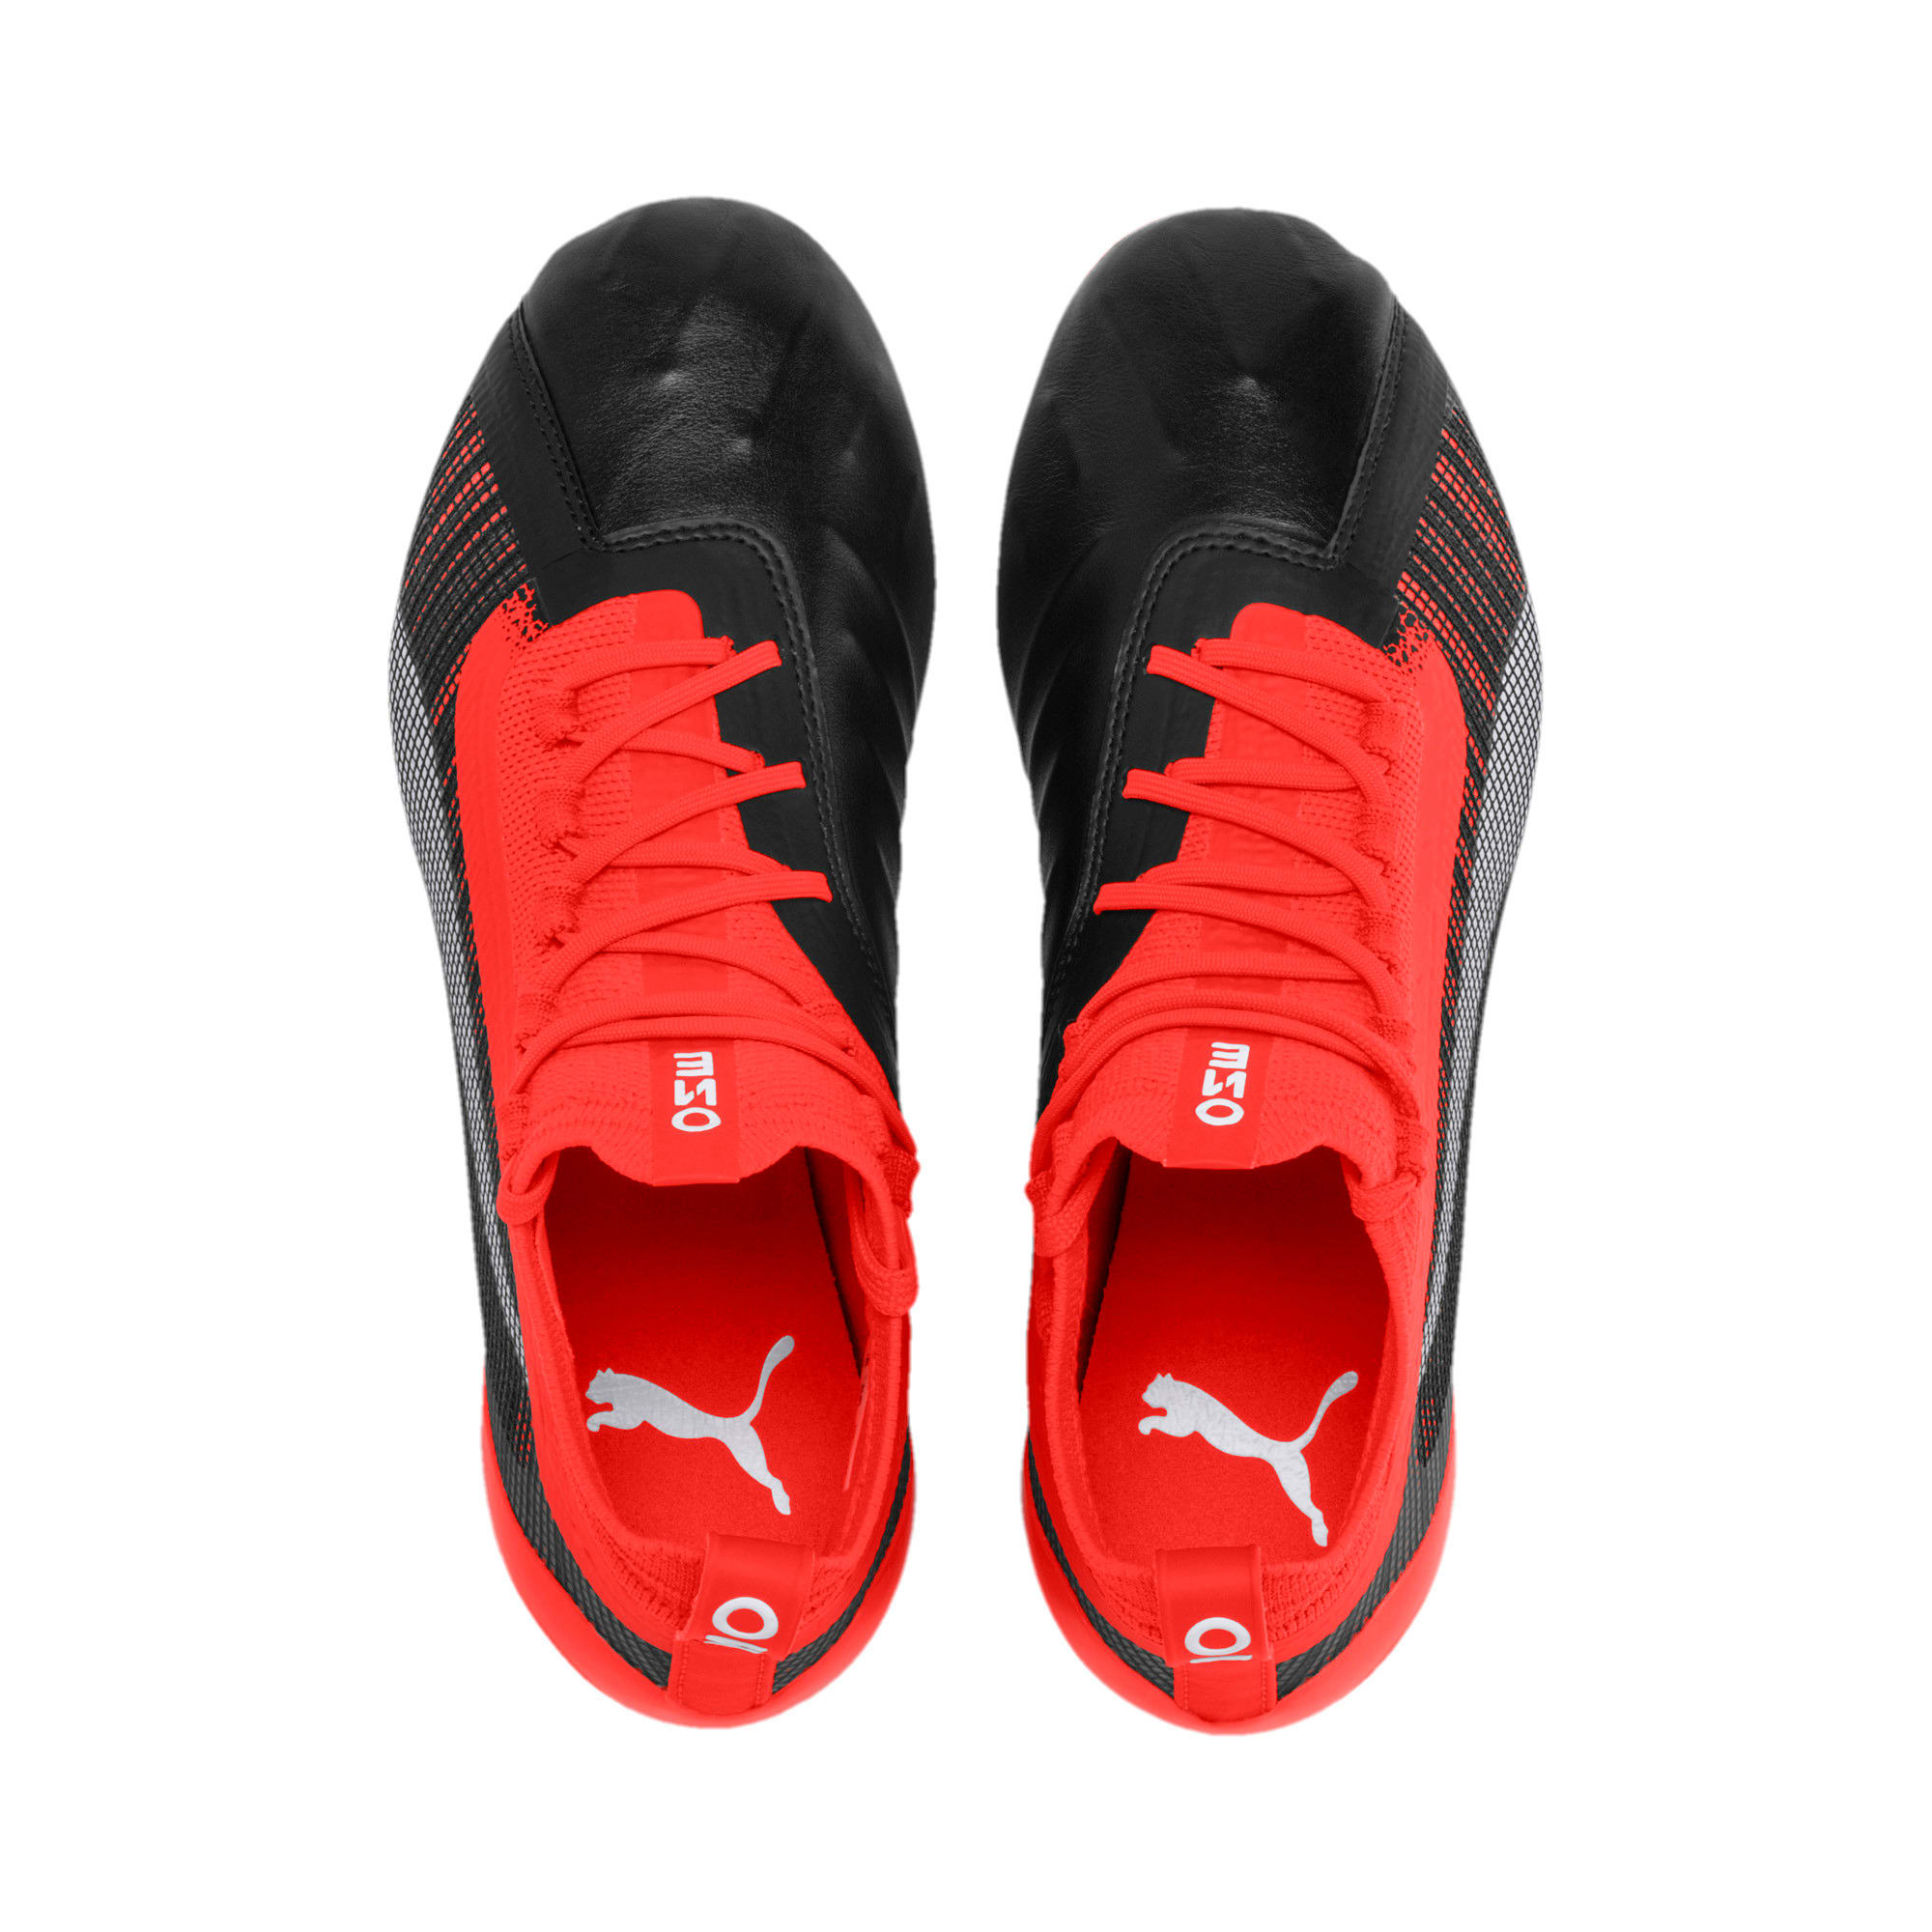 Thumbnail 6 of PUMA ONE 5.1 FG/AG Soccer Cleats JR, Black-Nrgy Red-Aged Silver, medium